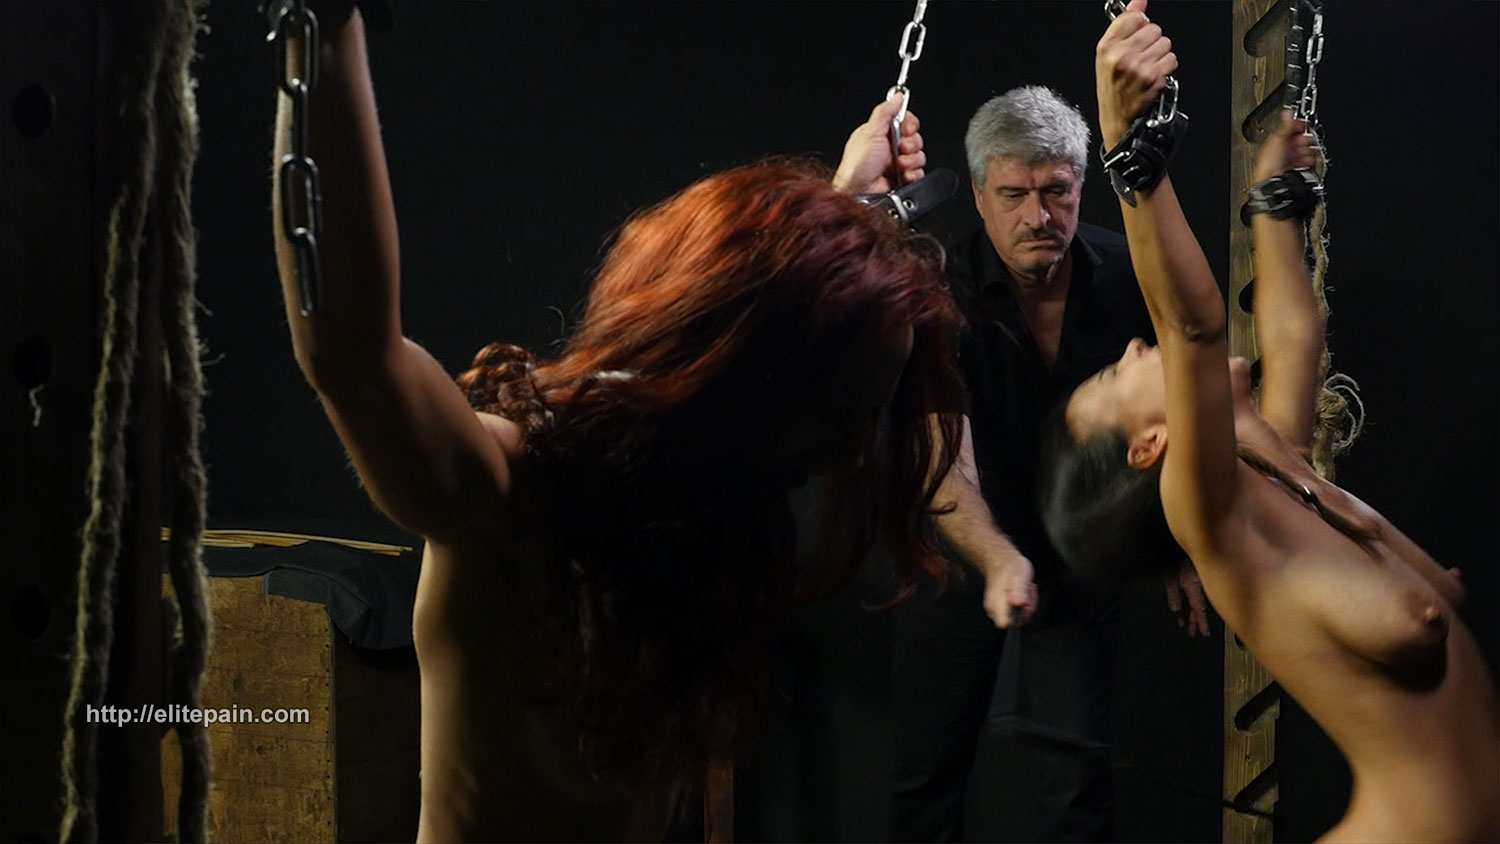 The bing bdsm video amateur